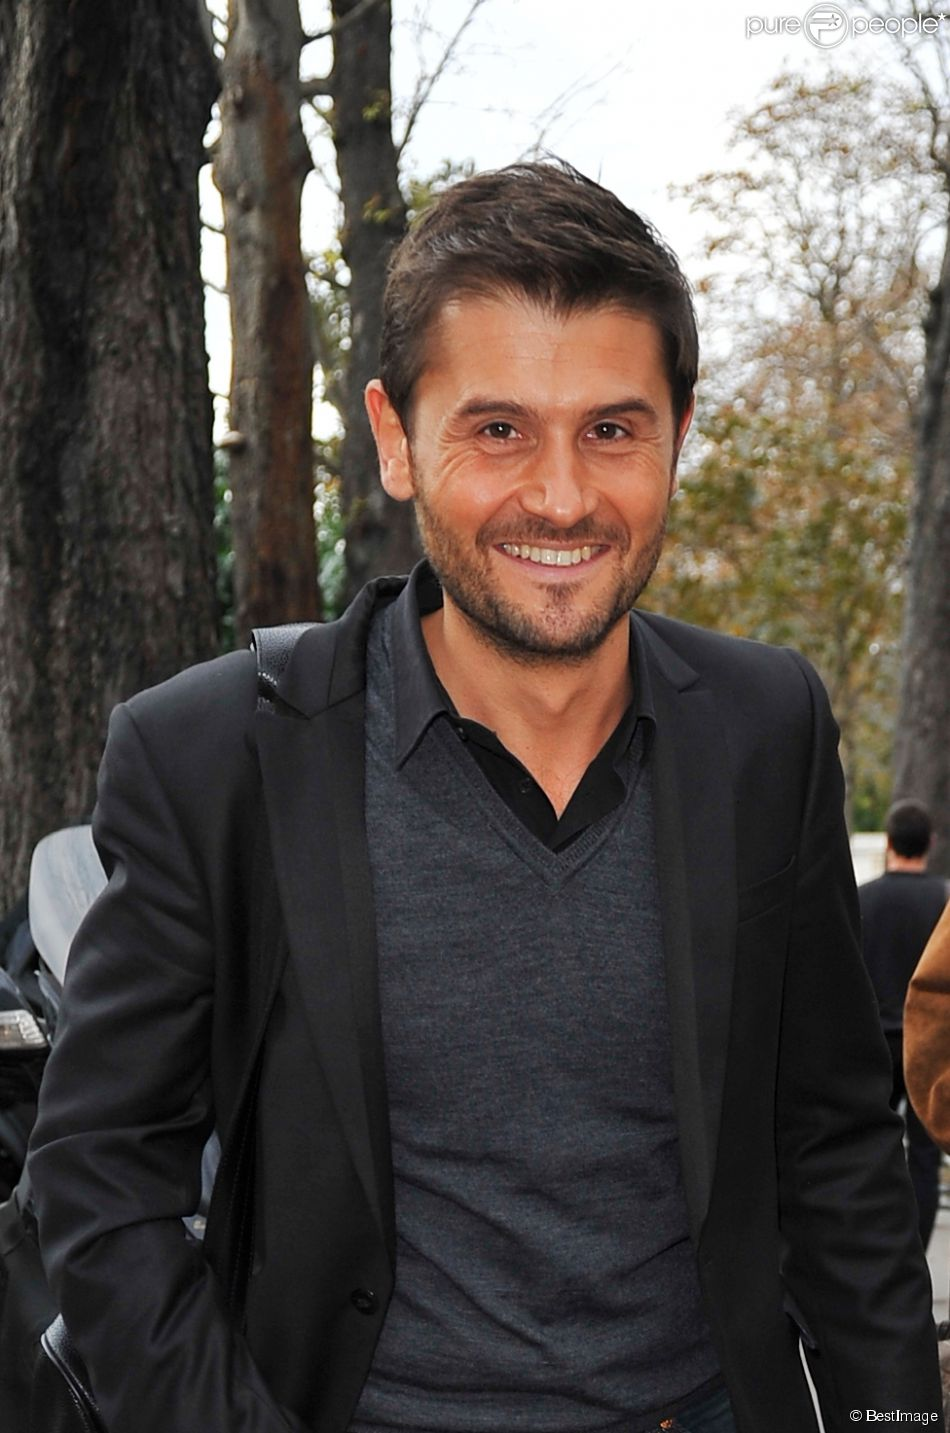 Exclusif - Christophe Beaugrand à l'enregistrement de l'émission  Vivement dimanche  à Paris le 22 octobre 2014.